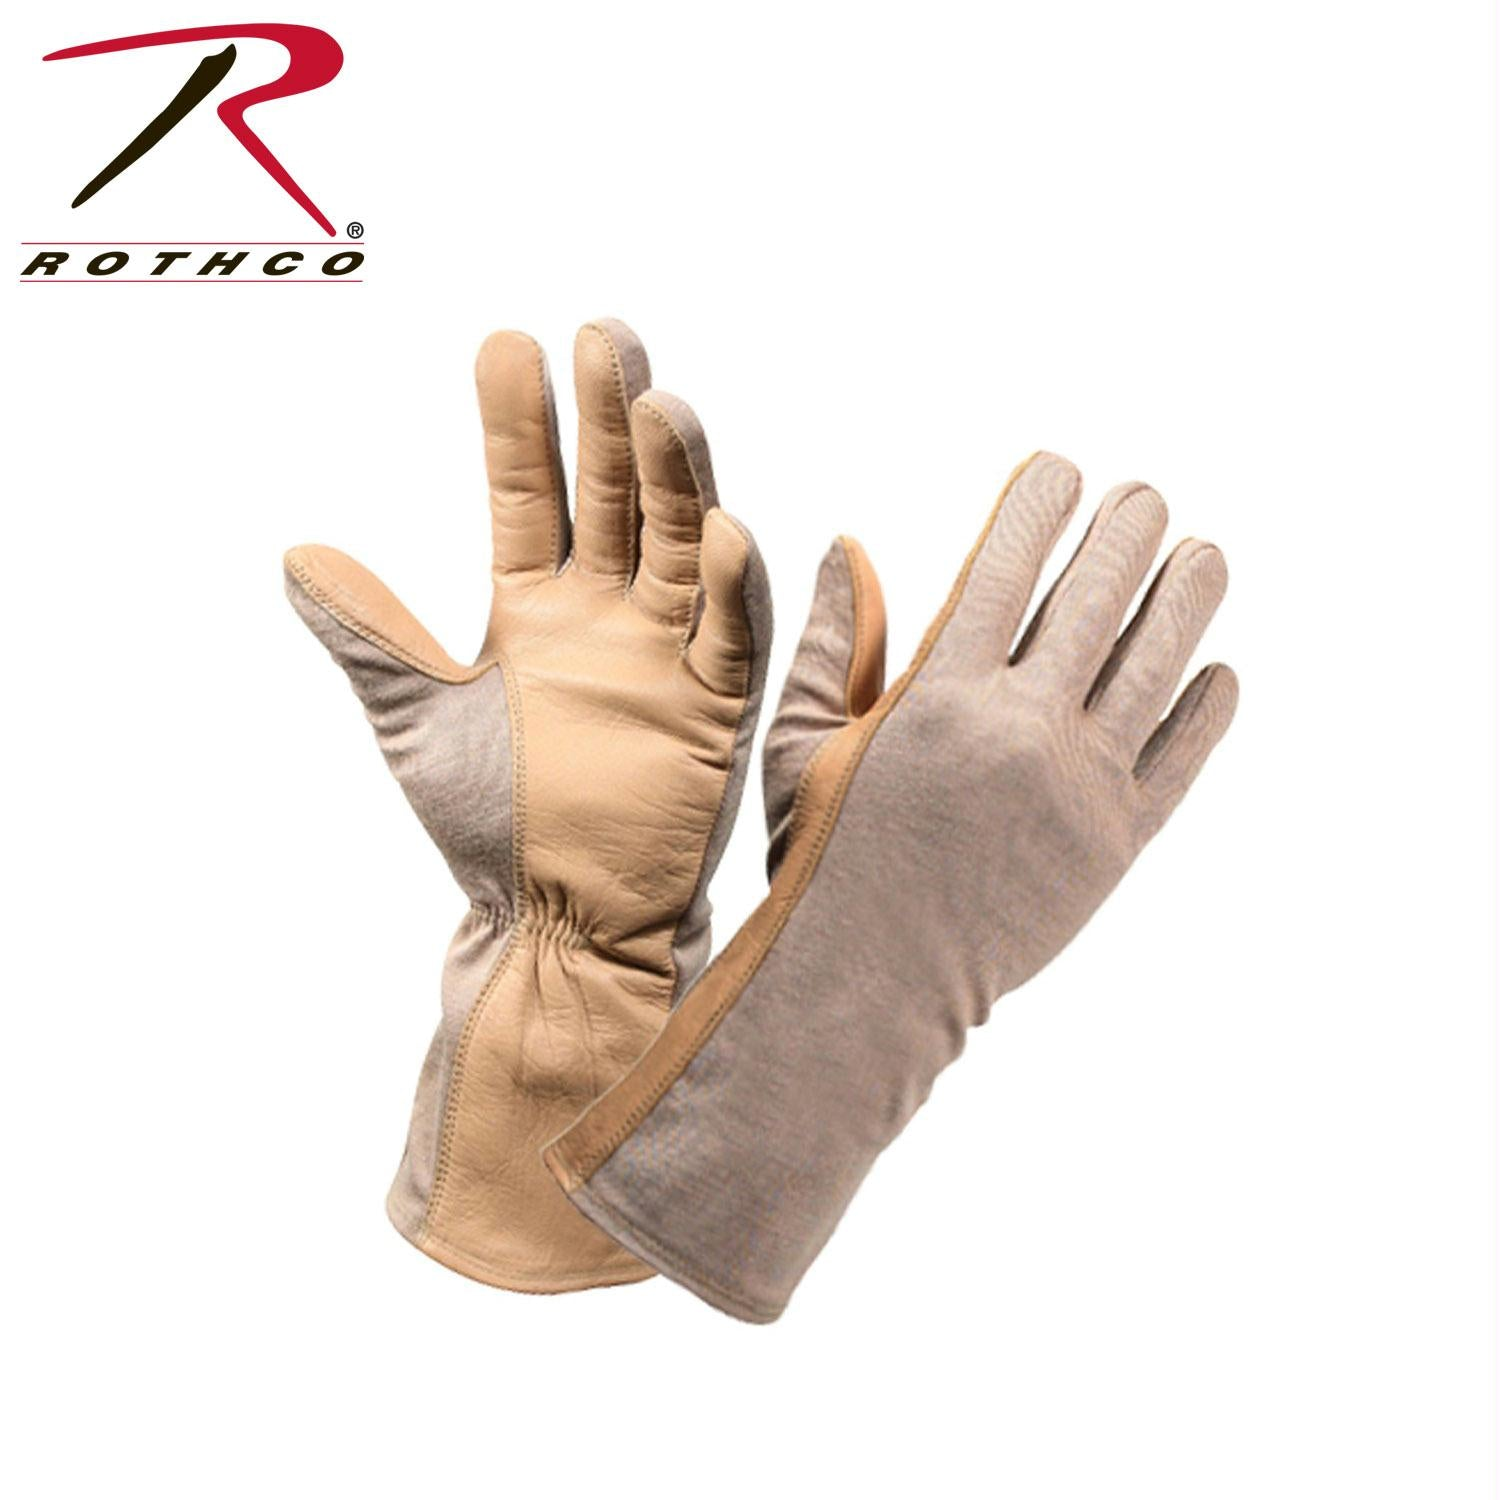 Rothco G.I. Type Flame & Heat Resistant Flight Gloves - Desert Sand / 9